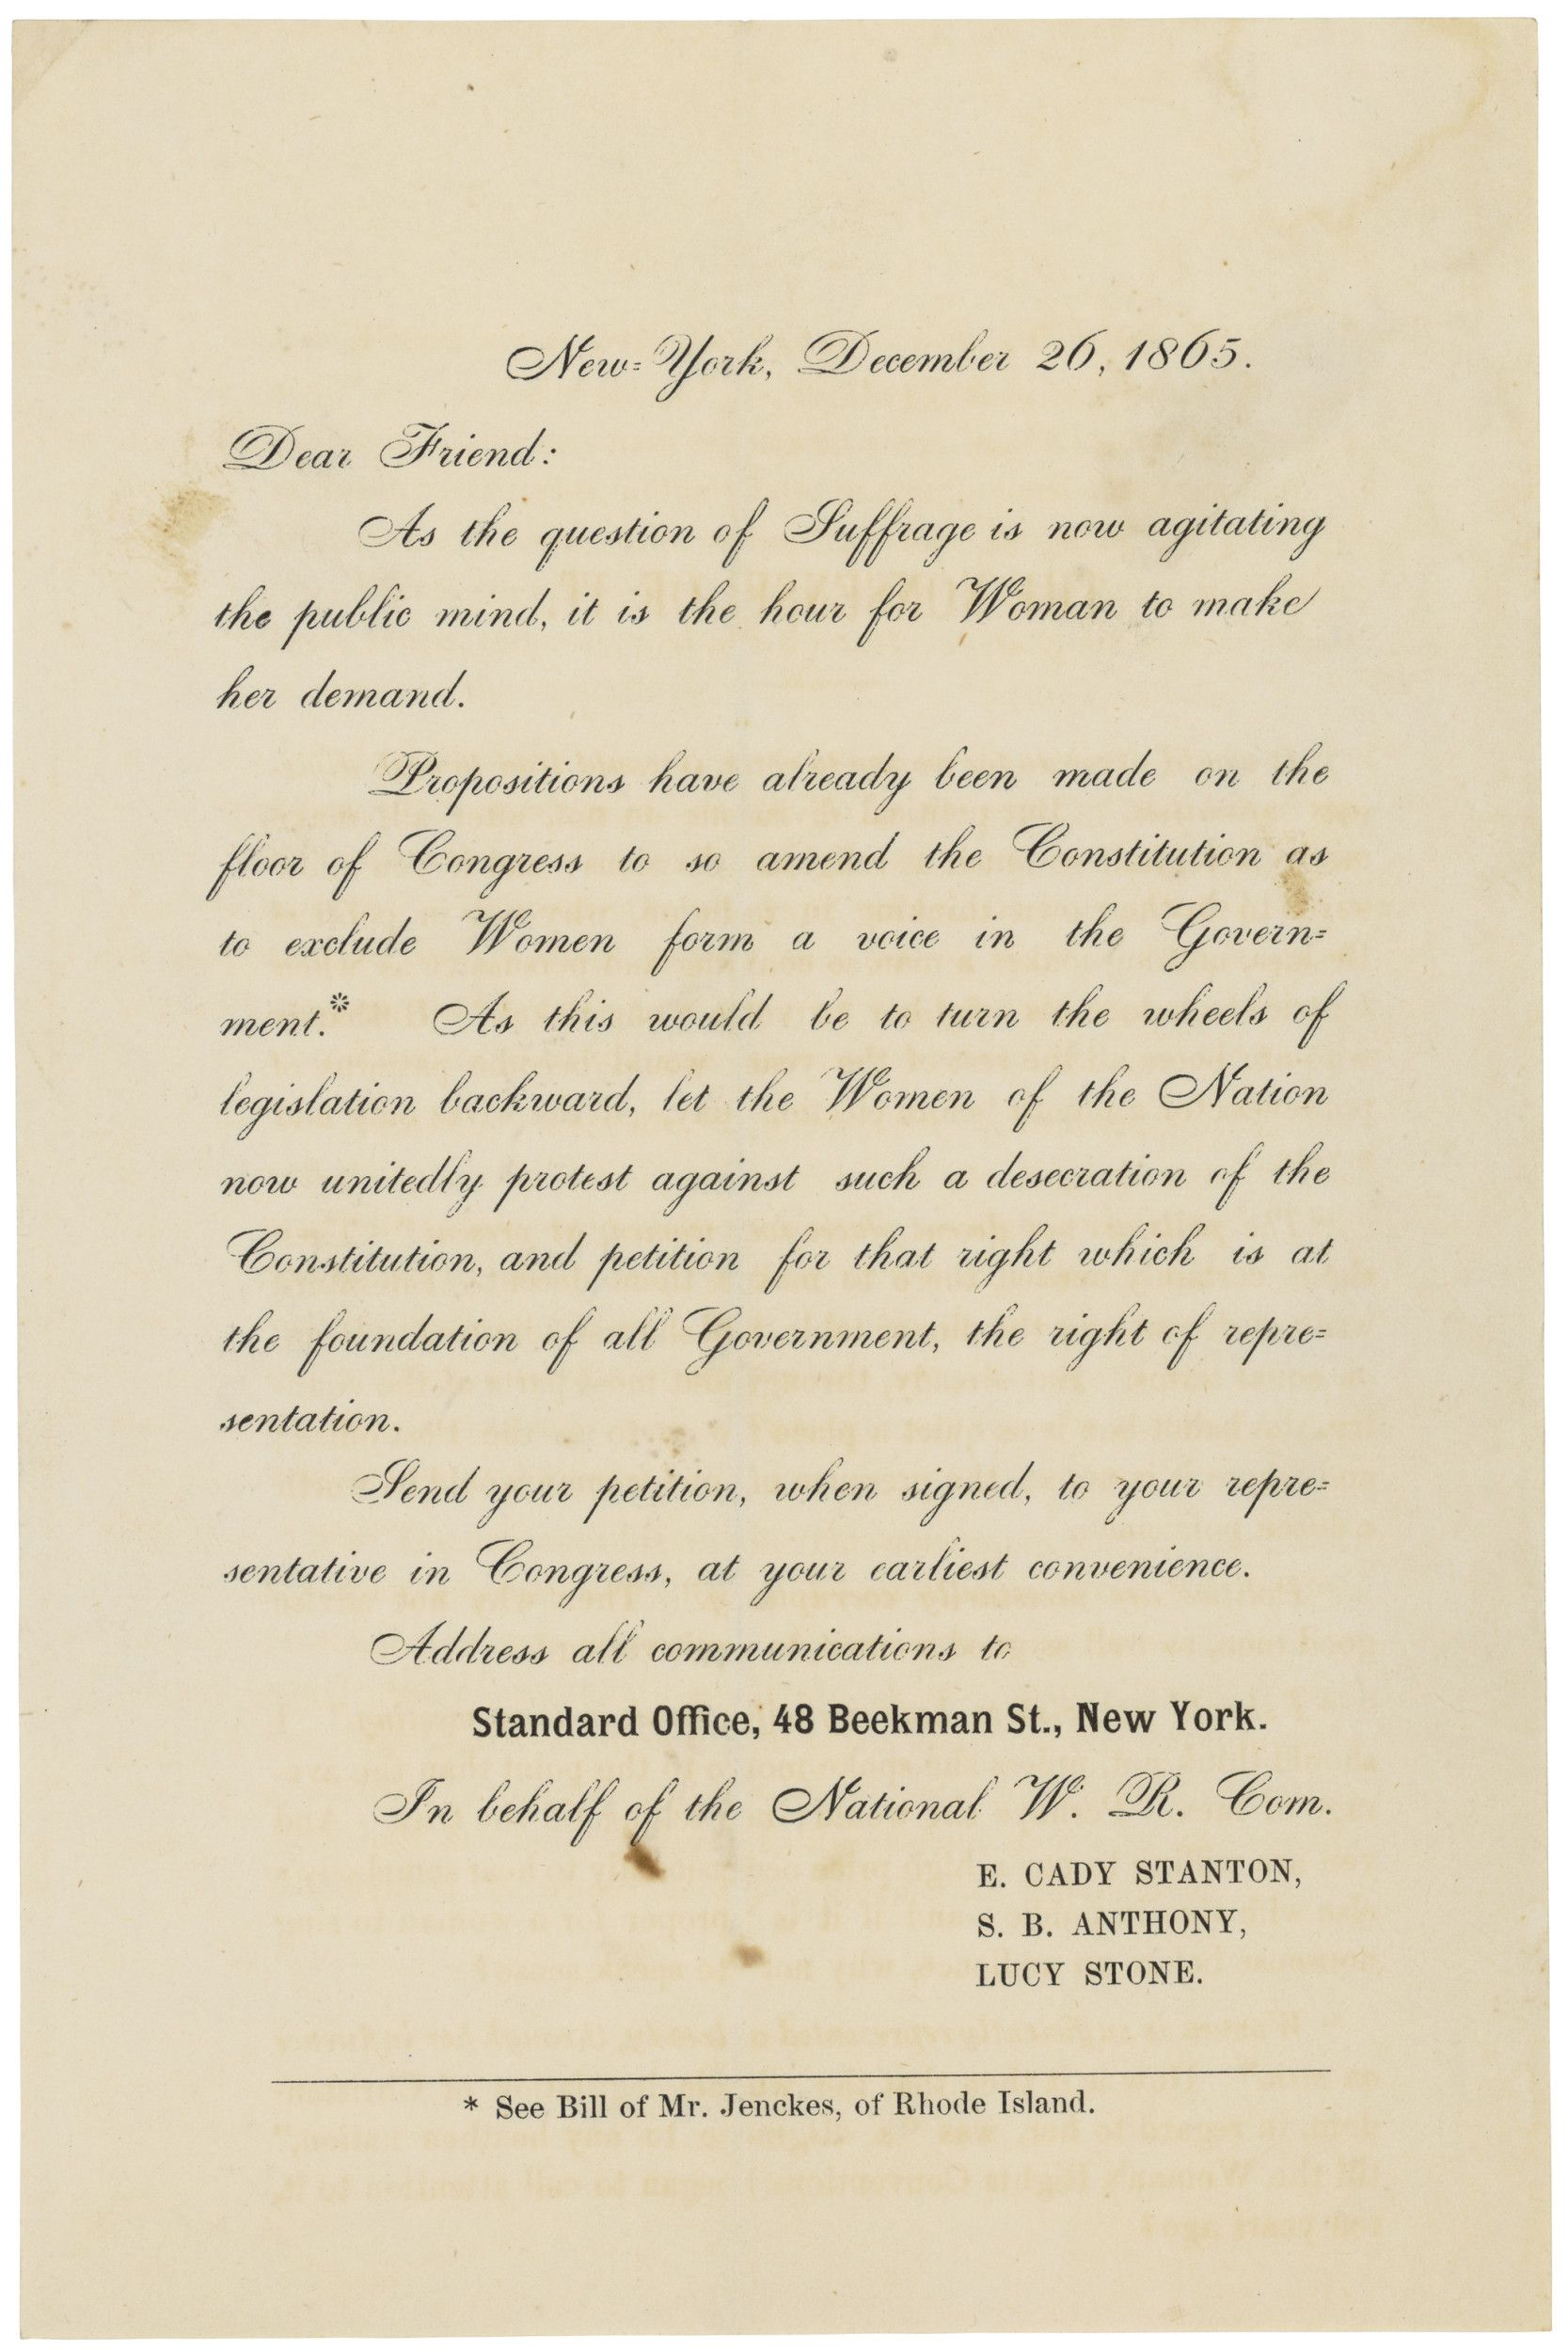 Form Letter from E. Cady Stanton, Susan B. Anthony, and Lucy Stone